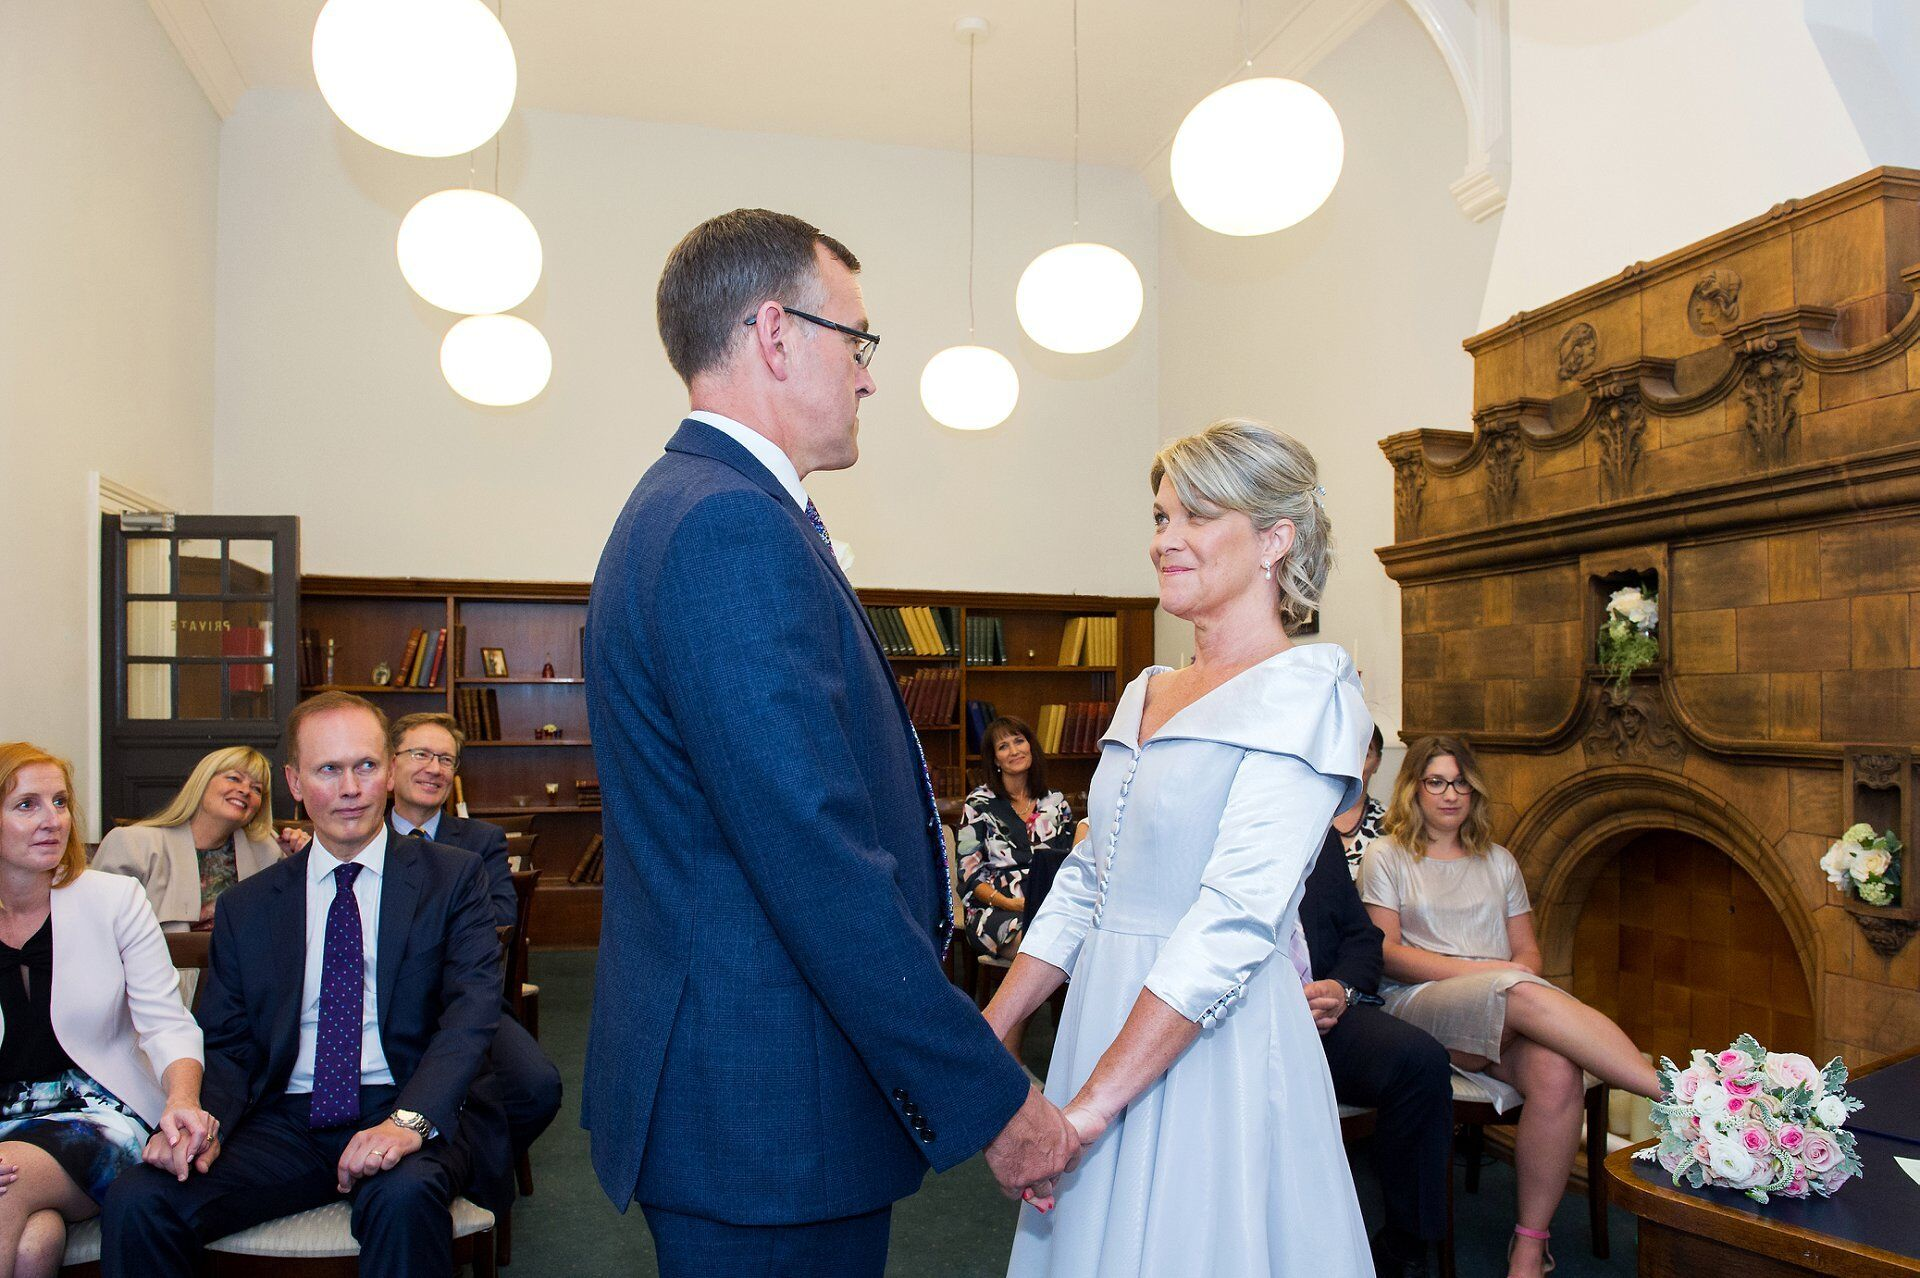 exchange of vows during this marylebone room ceremony at mayfair library